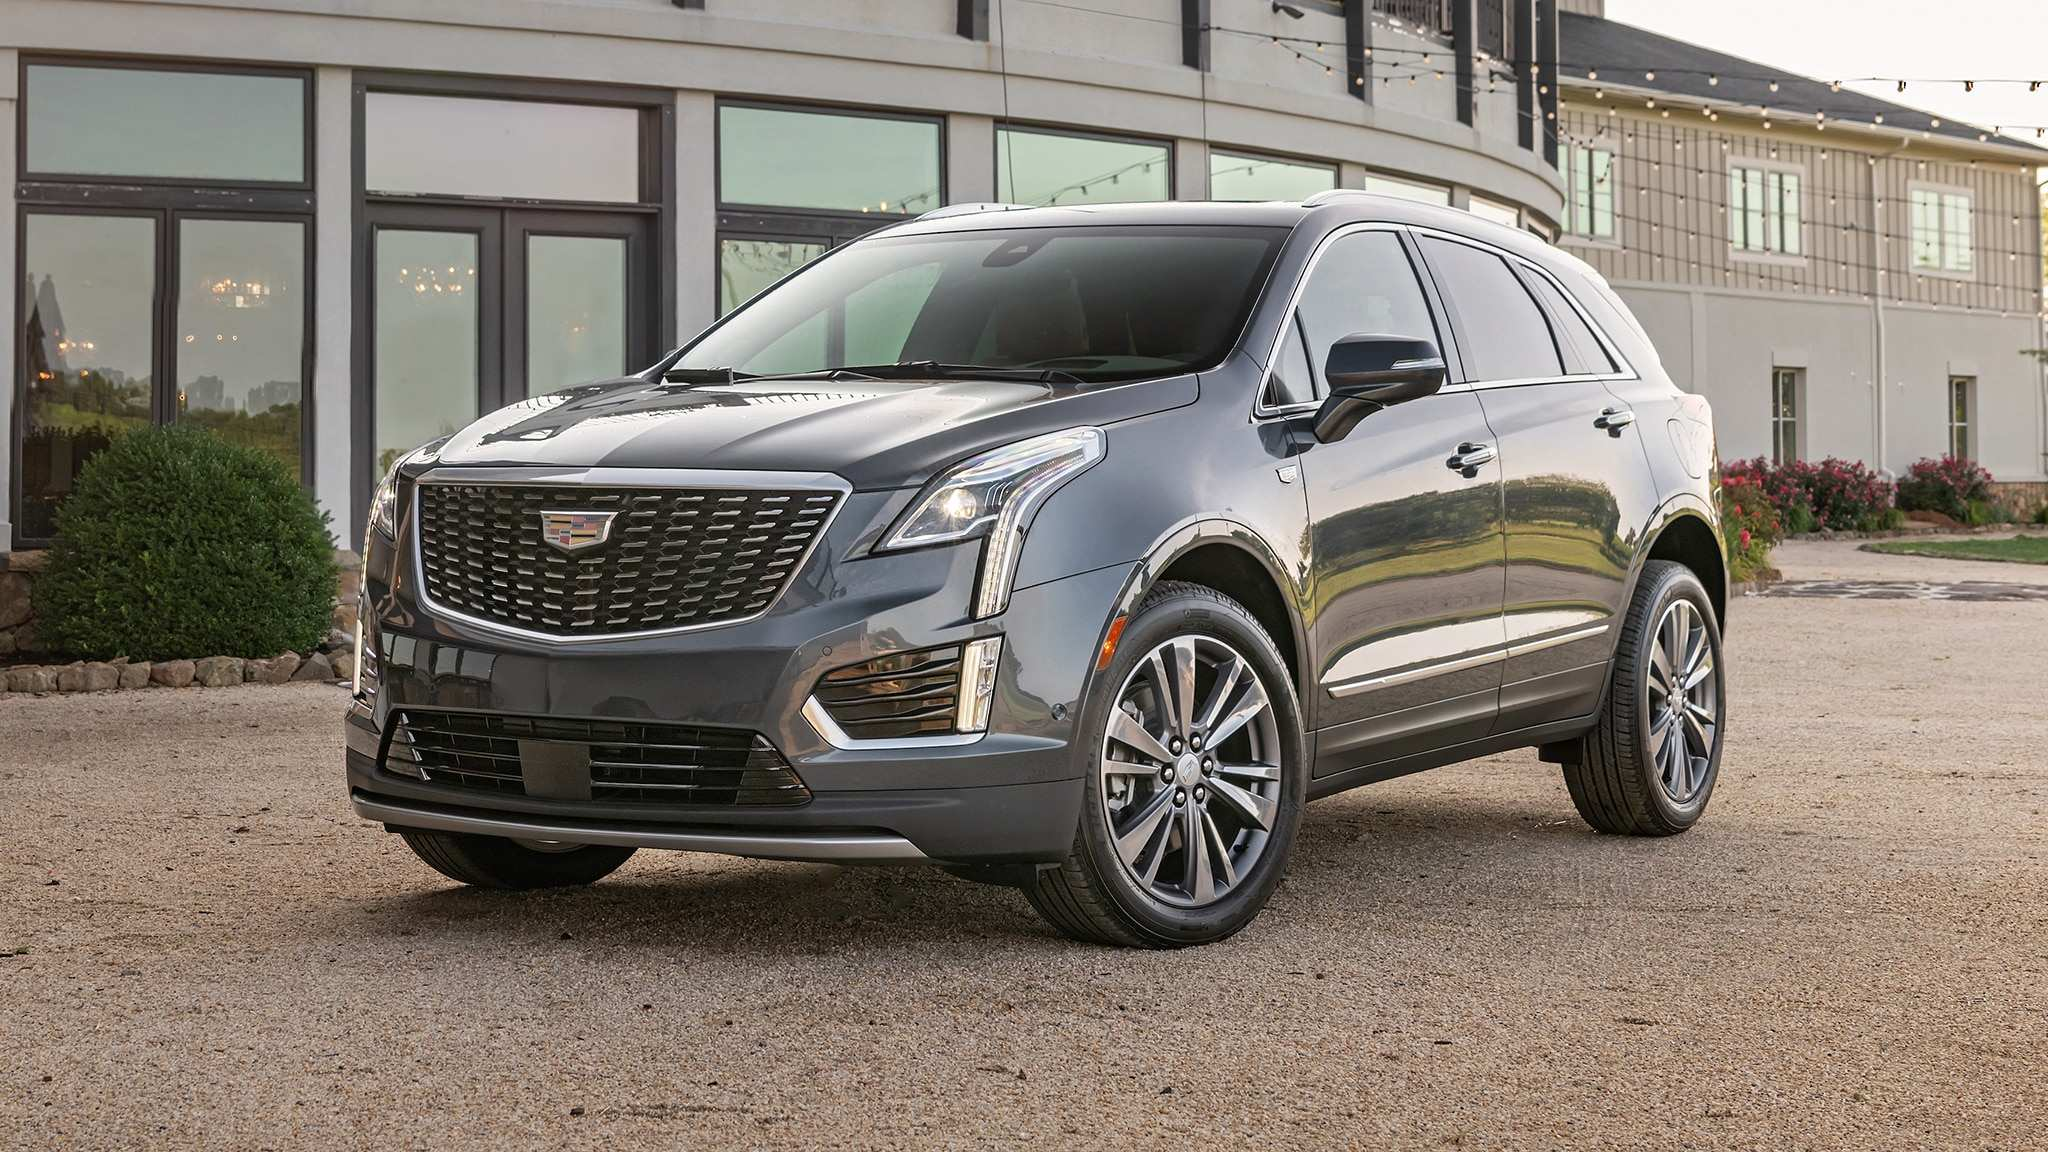 99 Best Review 2020 Cadillac Xt5 Review Photos by 2020 Cadillac Xt5 Review